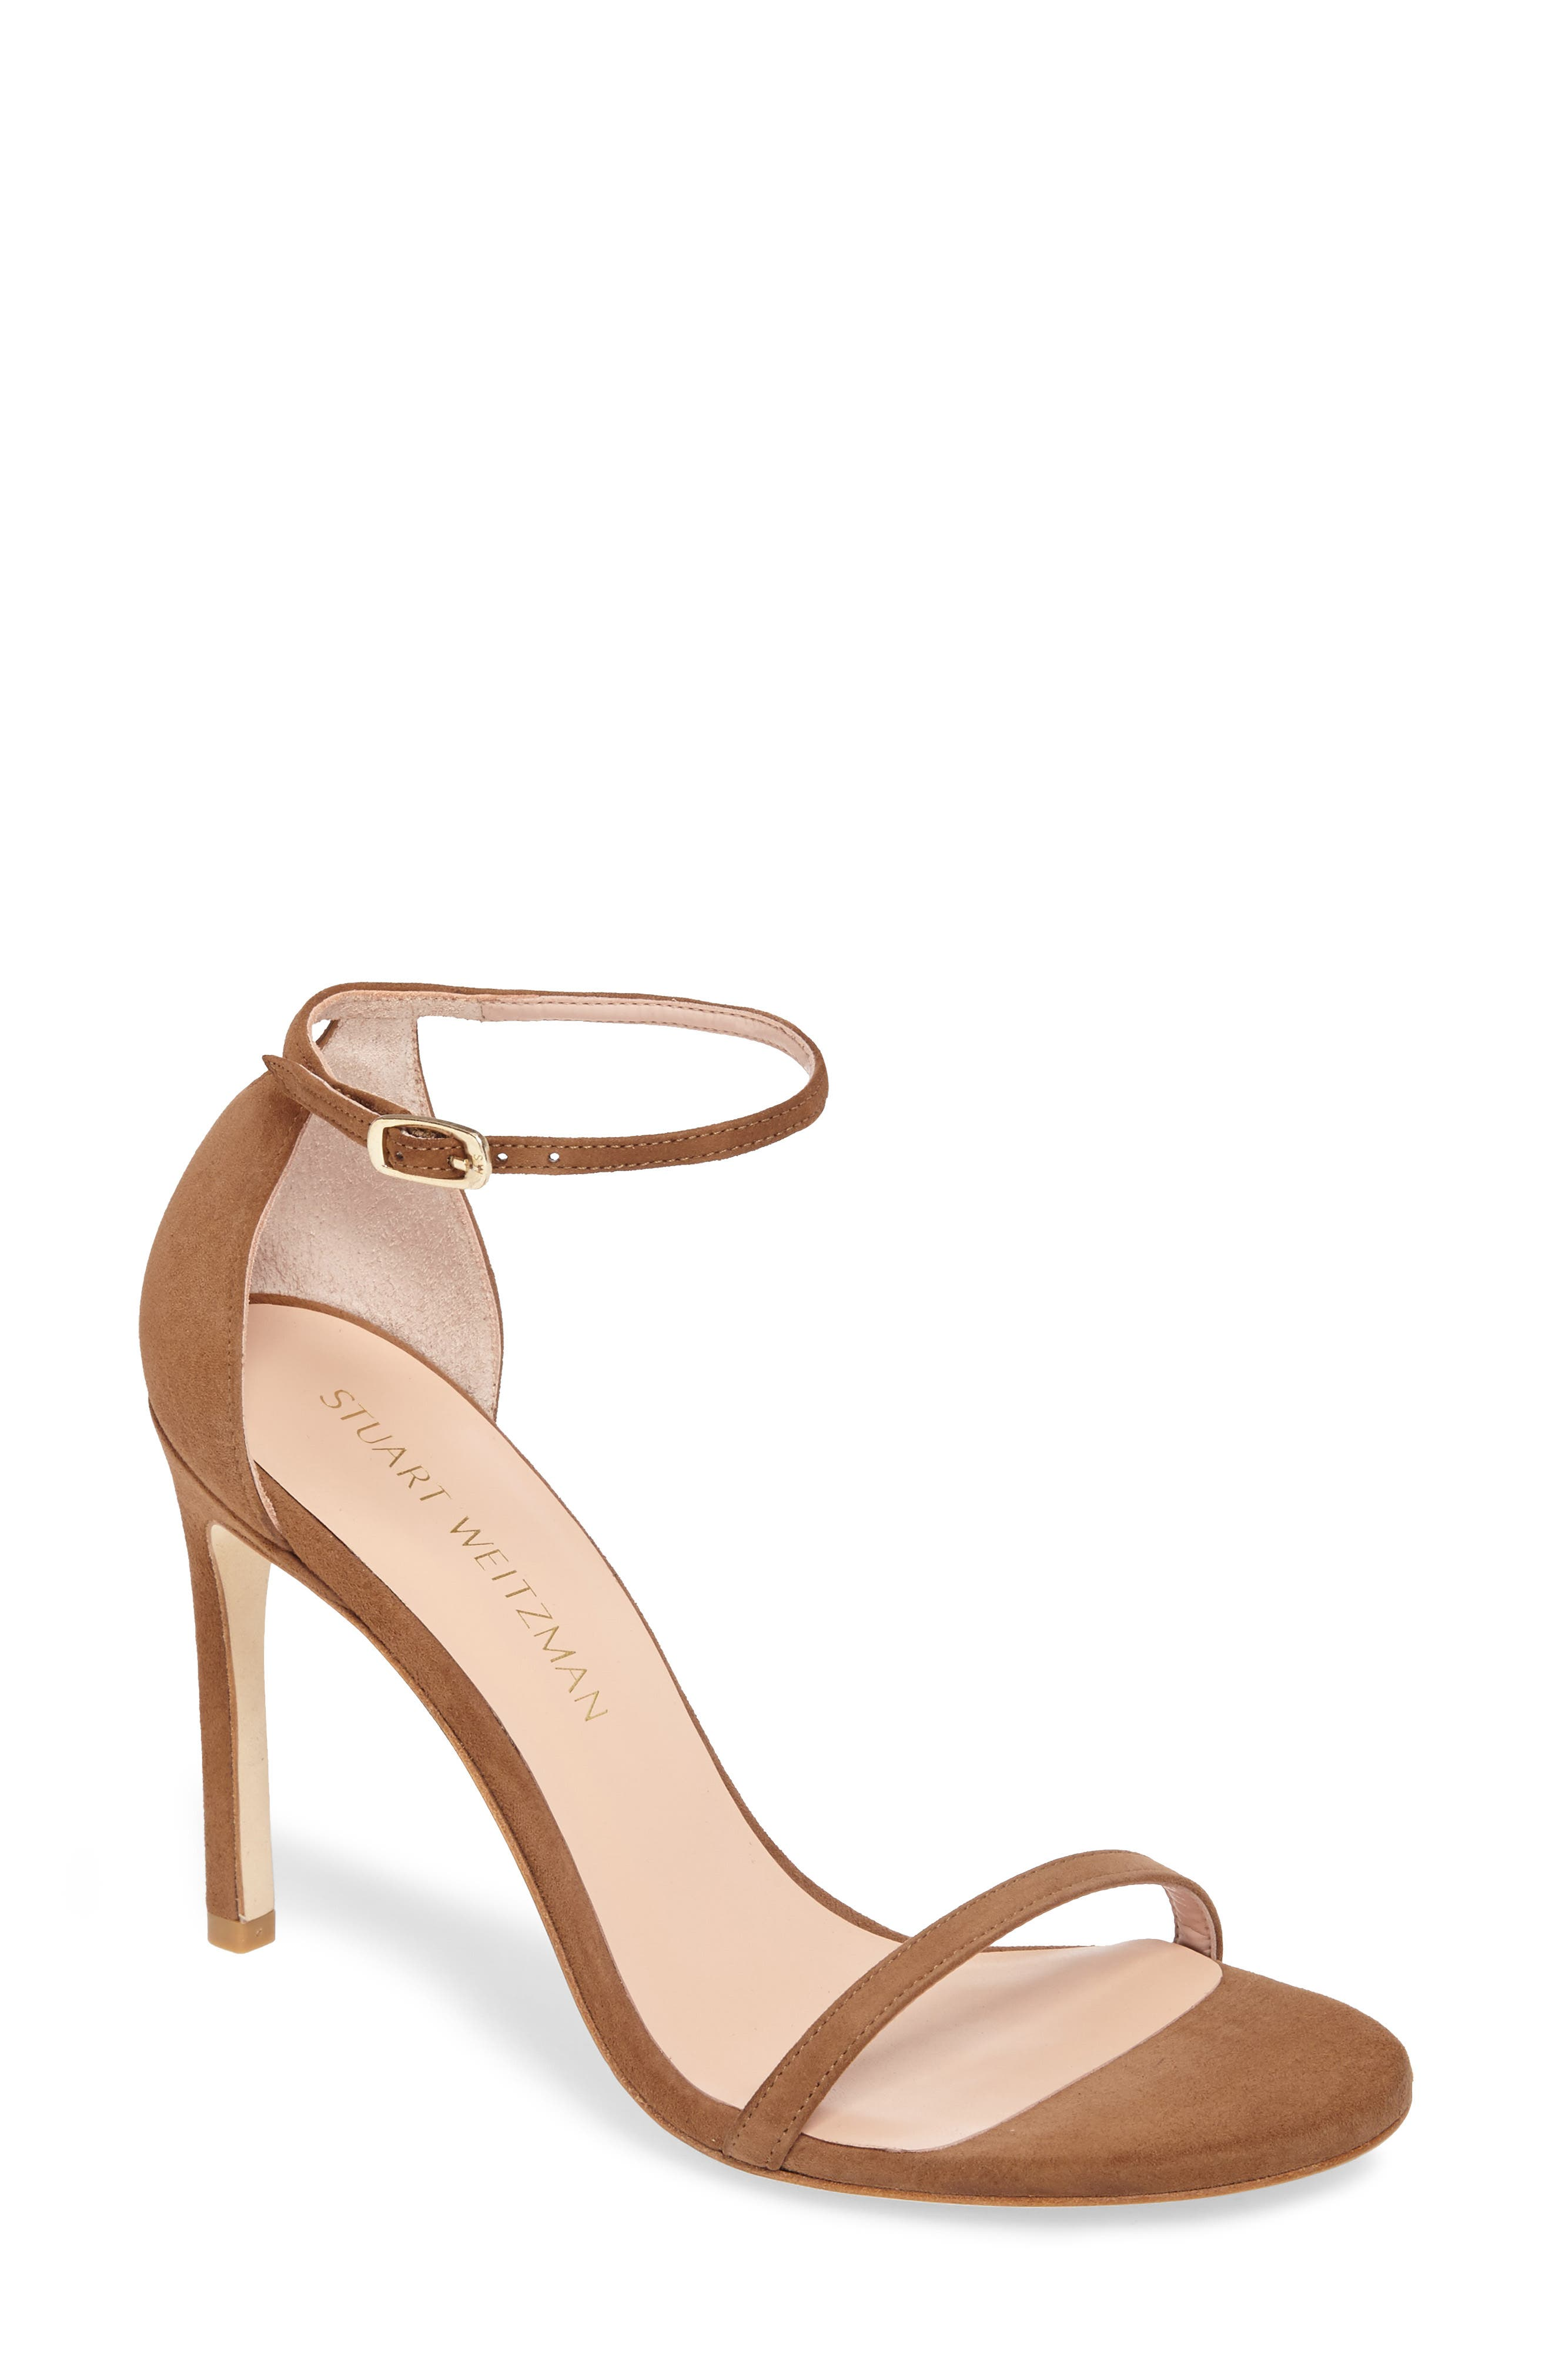 Nudistsong Ankle Strap Sandal,                             Main thumbnail 6, color,